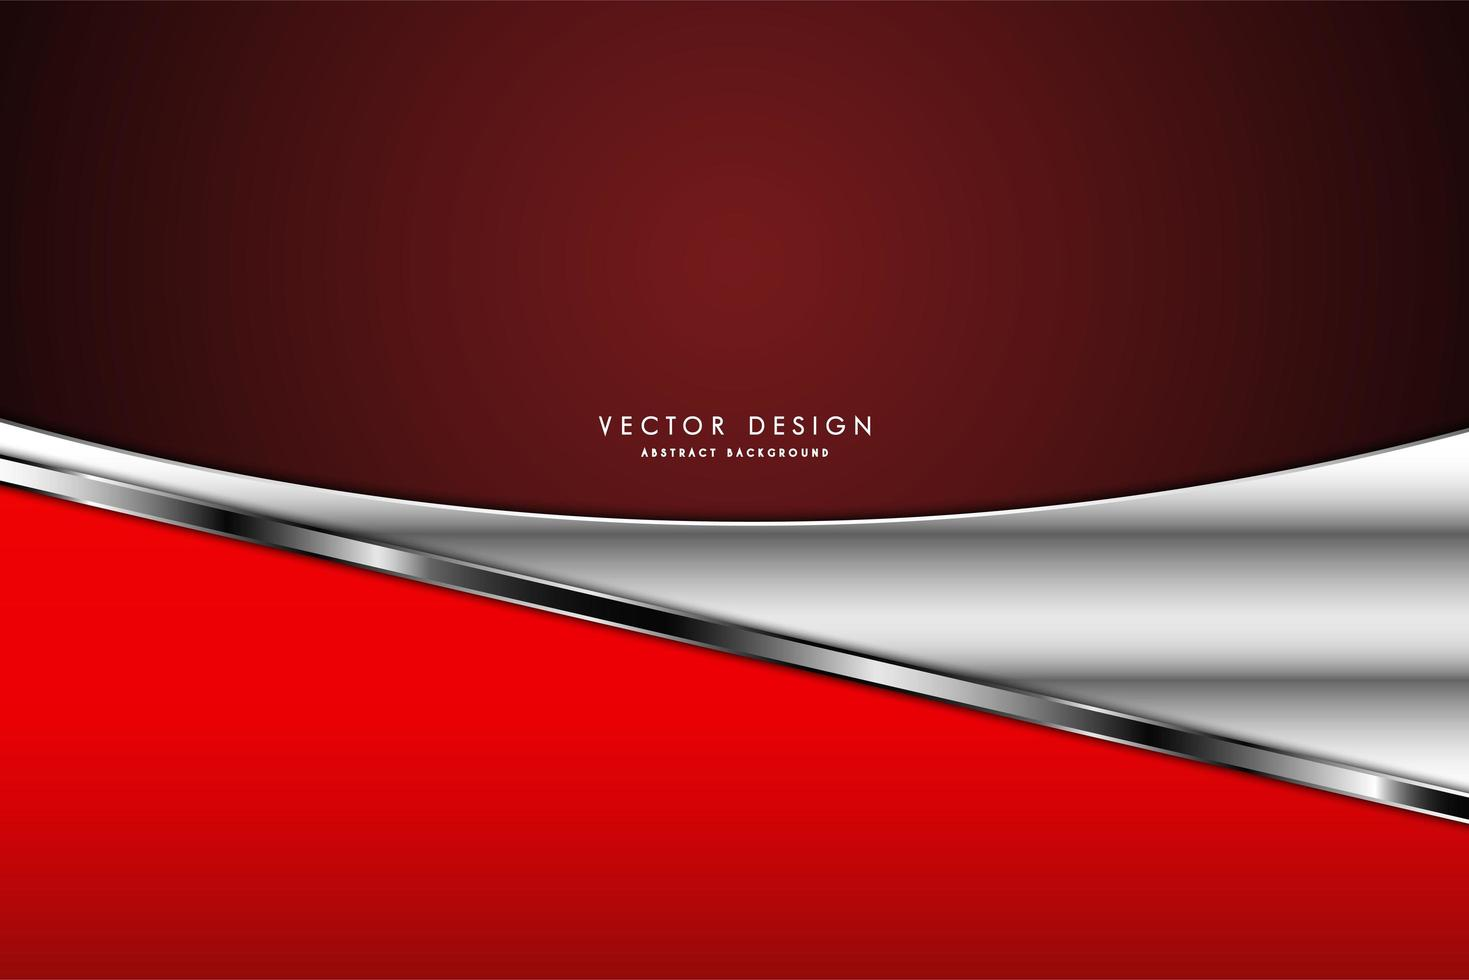 Metallic red and silver curved panels over dark red gradient vector